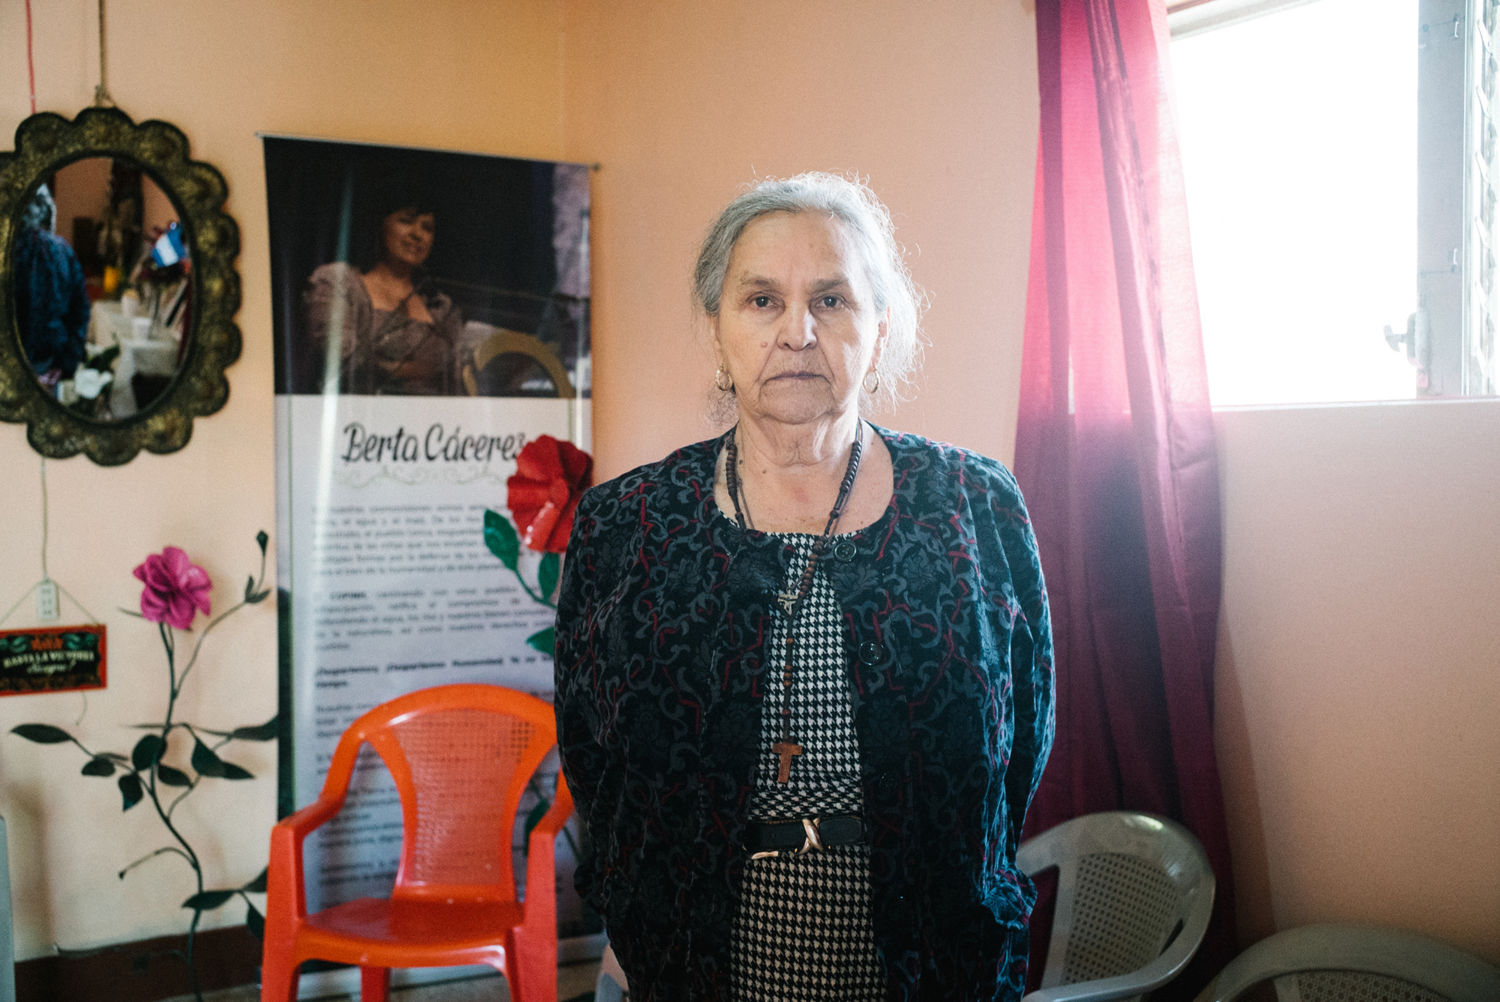 Austraberta Flores, Cáceres's mother, says authorities were aware of threats against her daughter, but did nothing to protect her.